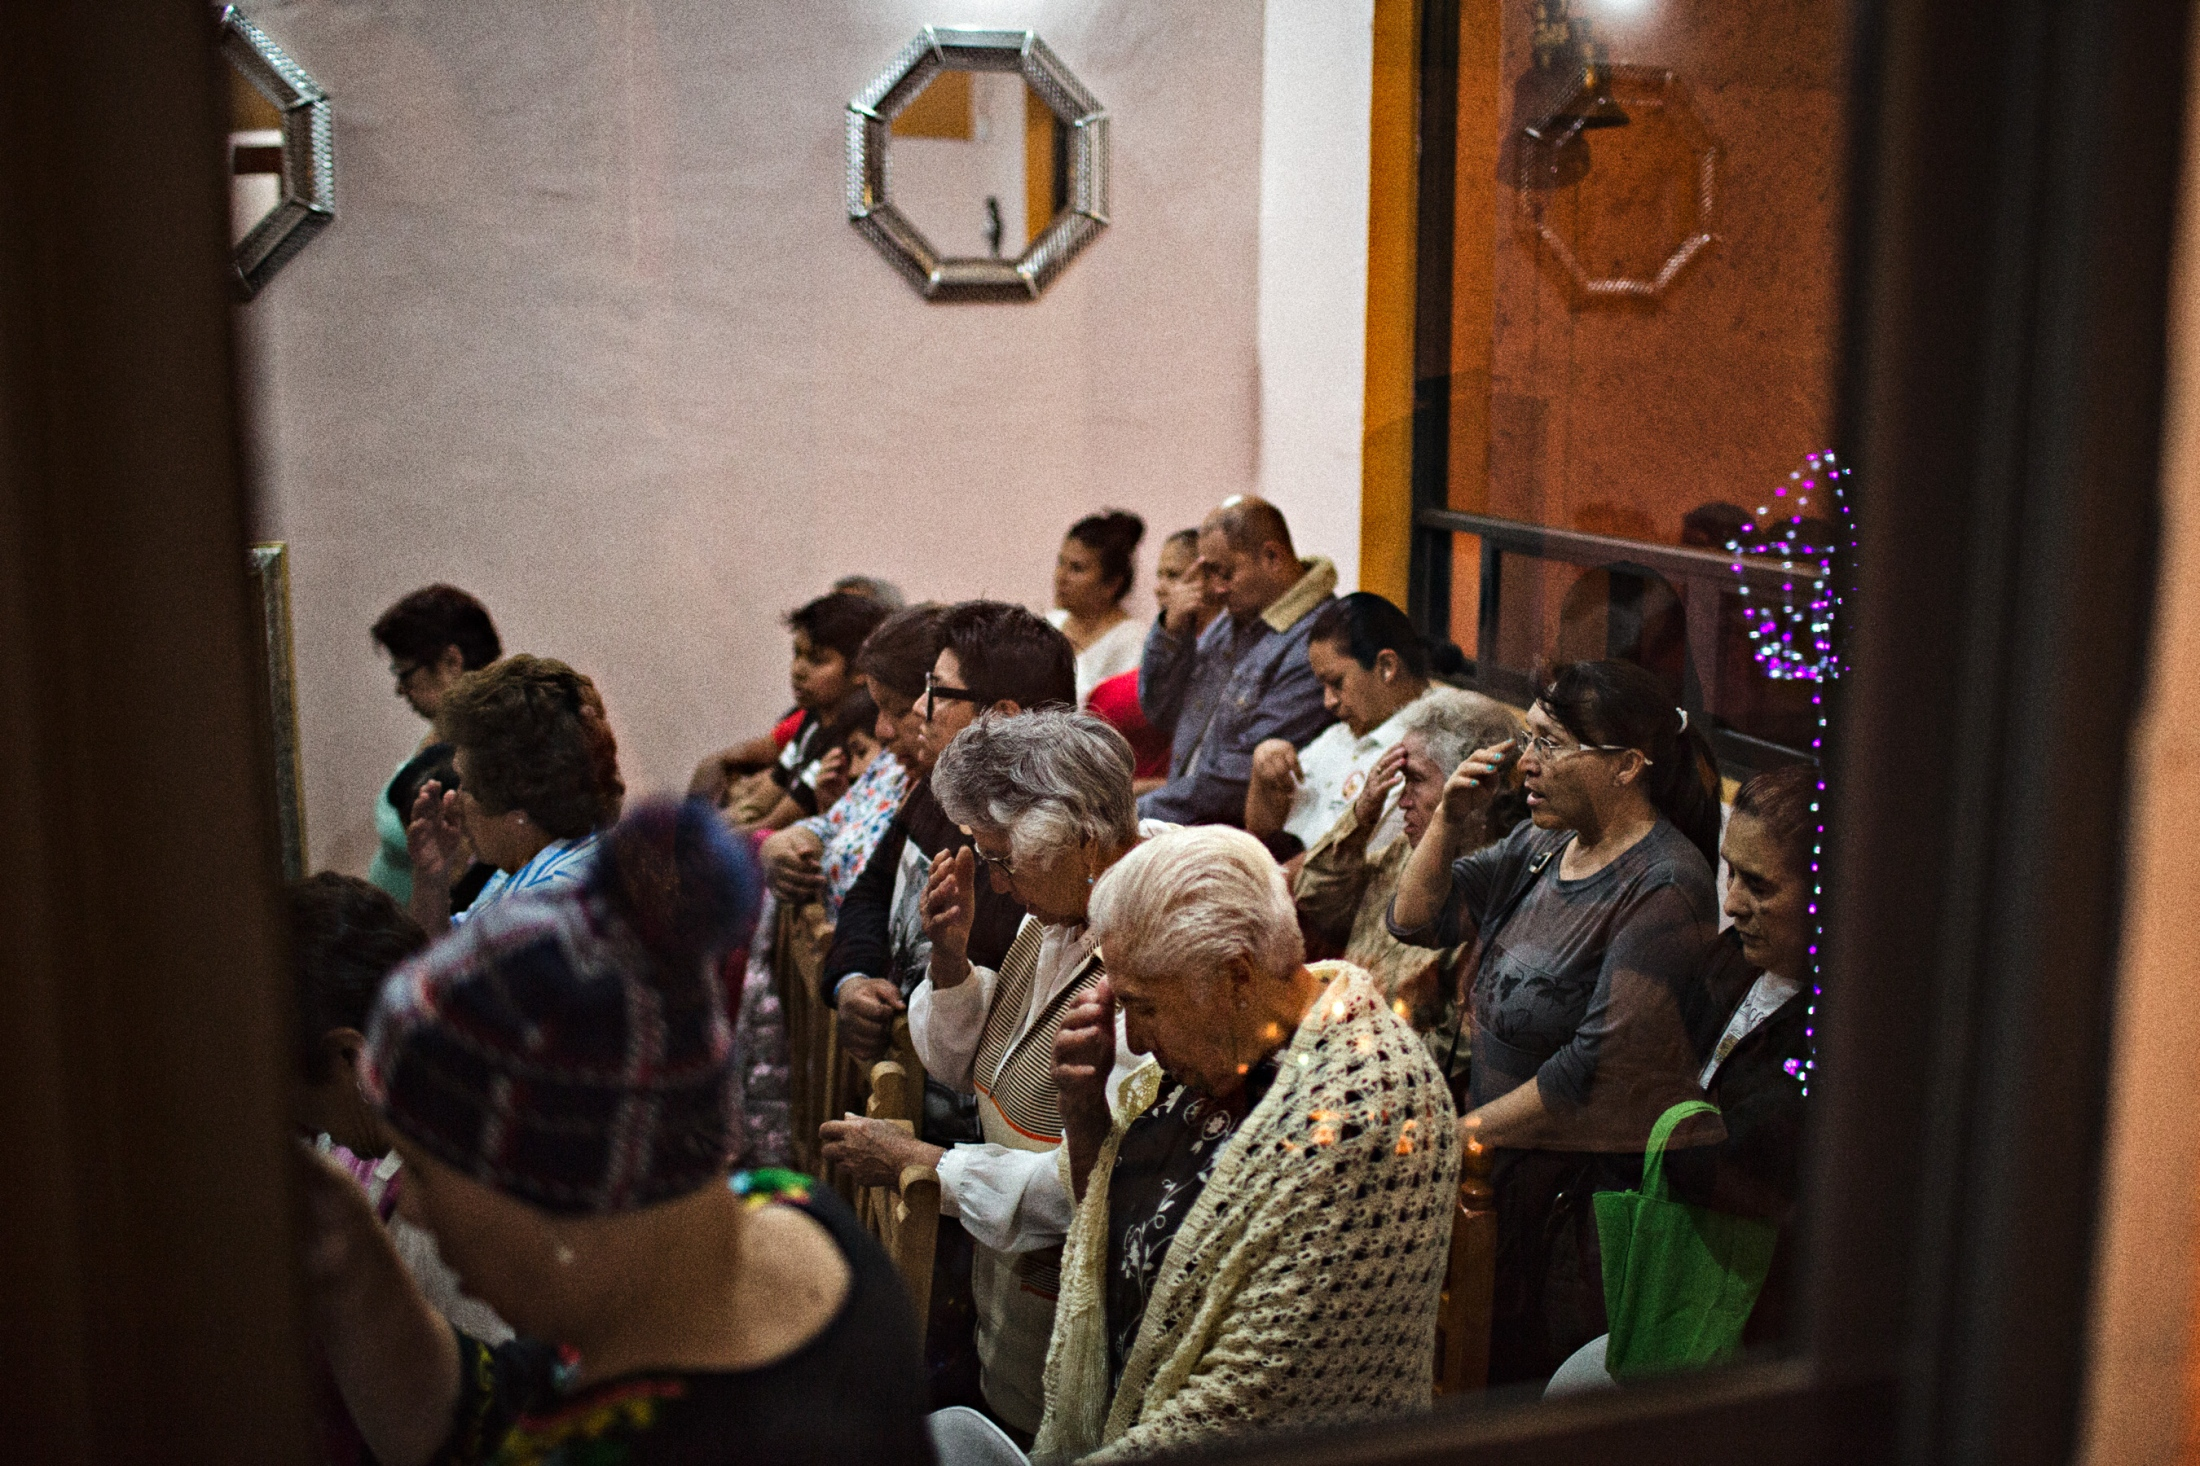 When Jorge Serralte Huerte remodled his home fourteen years ago, he anticipated the need to a place for worshipers to come and pray during the year Niñopa is guest in his home. The area can hold some 40 people and each night, at 8:00pm it is time for Rosaries. On an average day, about 100 to 150 worshipers visit the house.